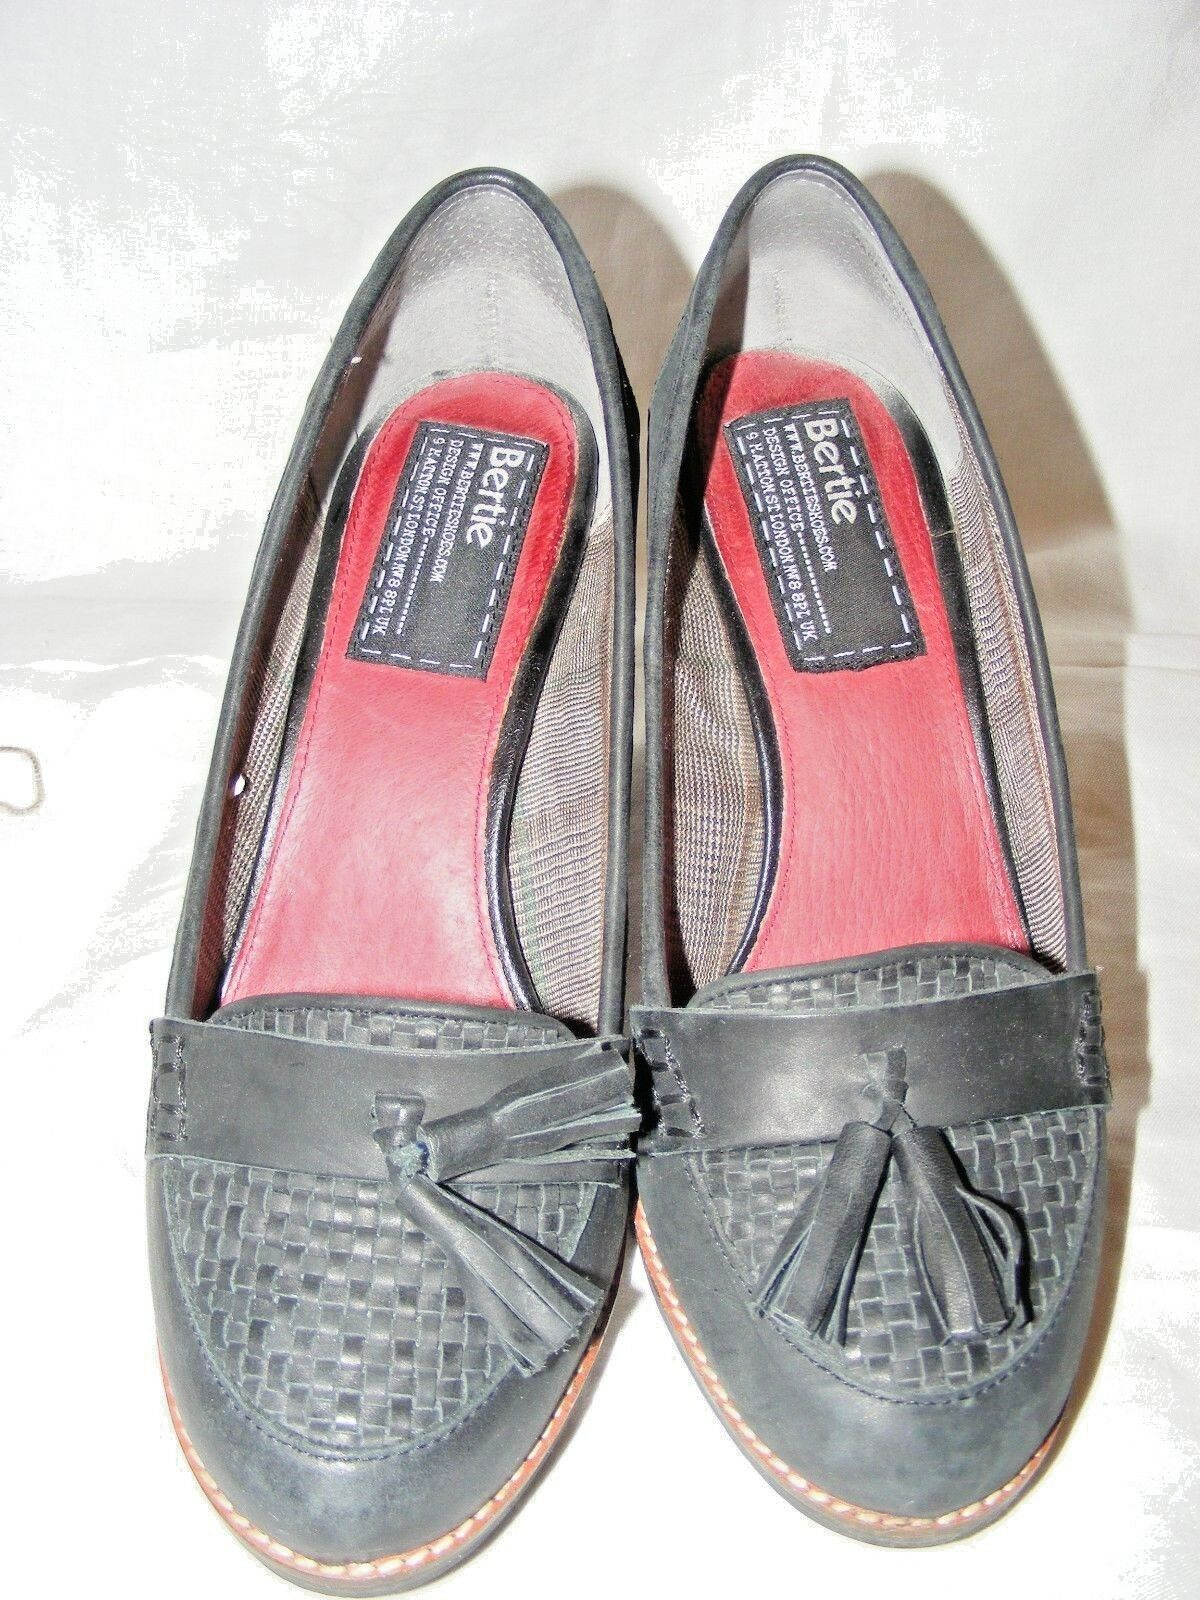 BERTIE SMART BROGUE WITH HEEL LADIES BLACK LEATHER GORGEOUS 5 SHOES EUR 38 UK 5 GORGEOUS f3036e